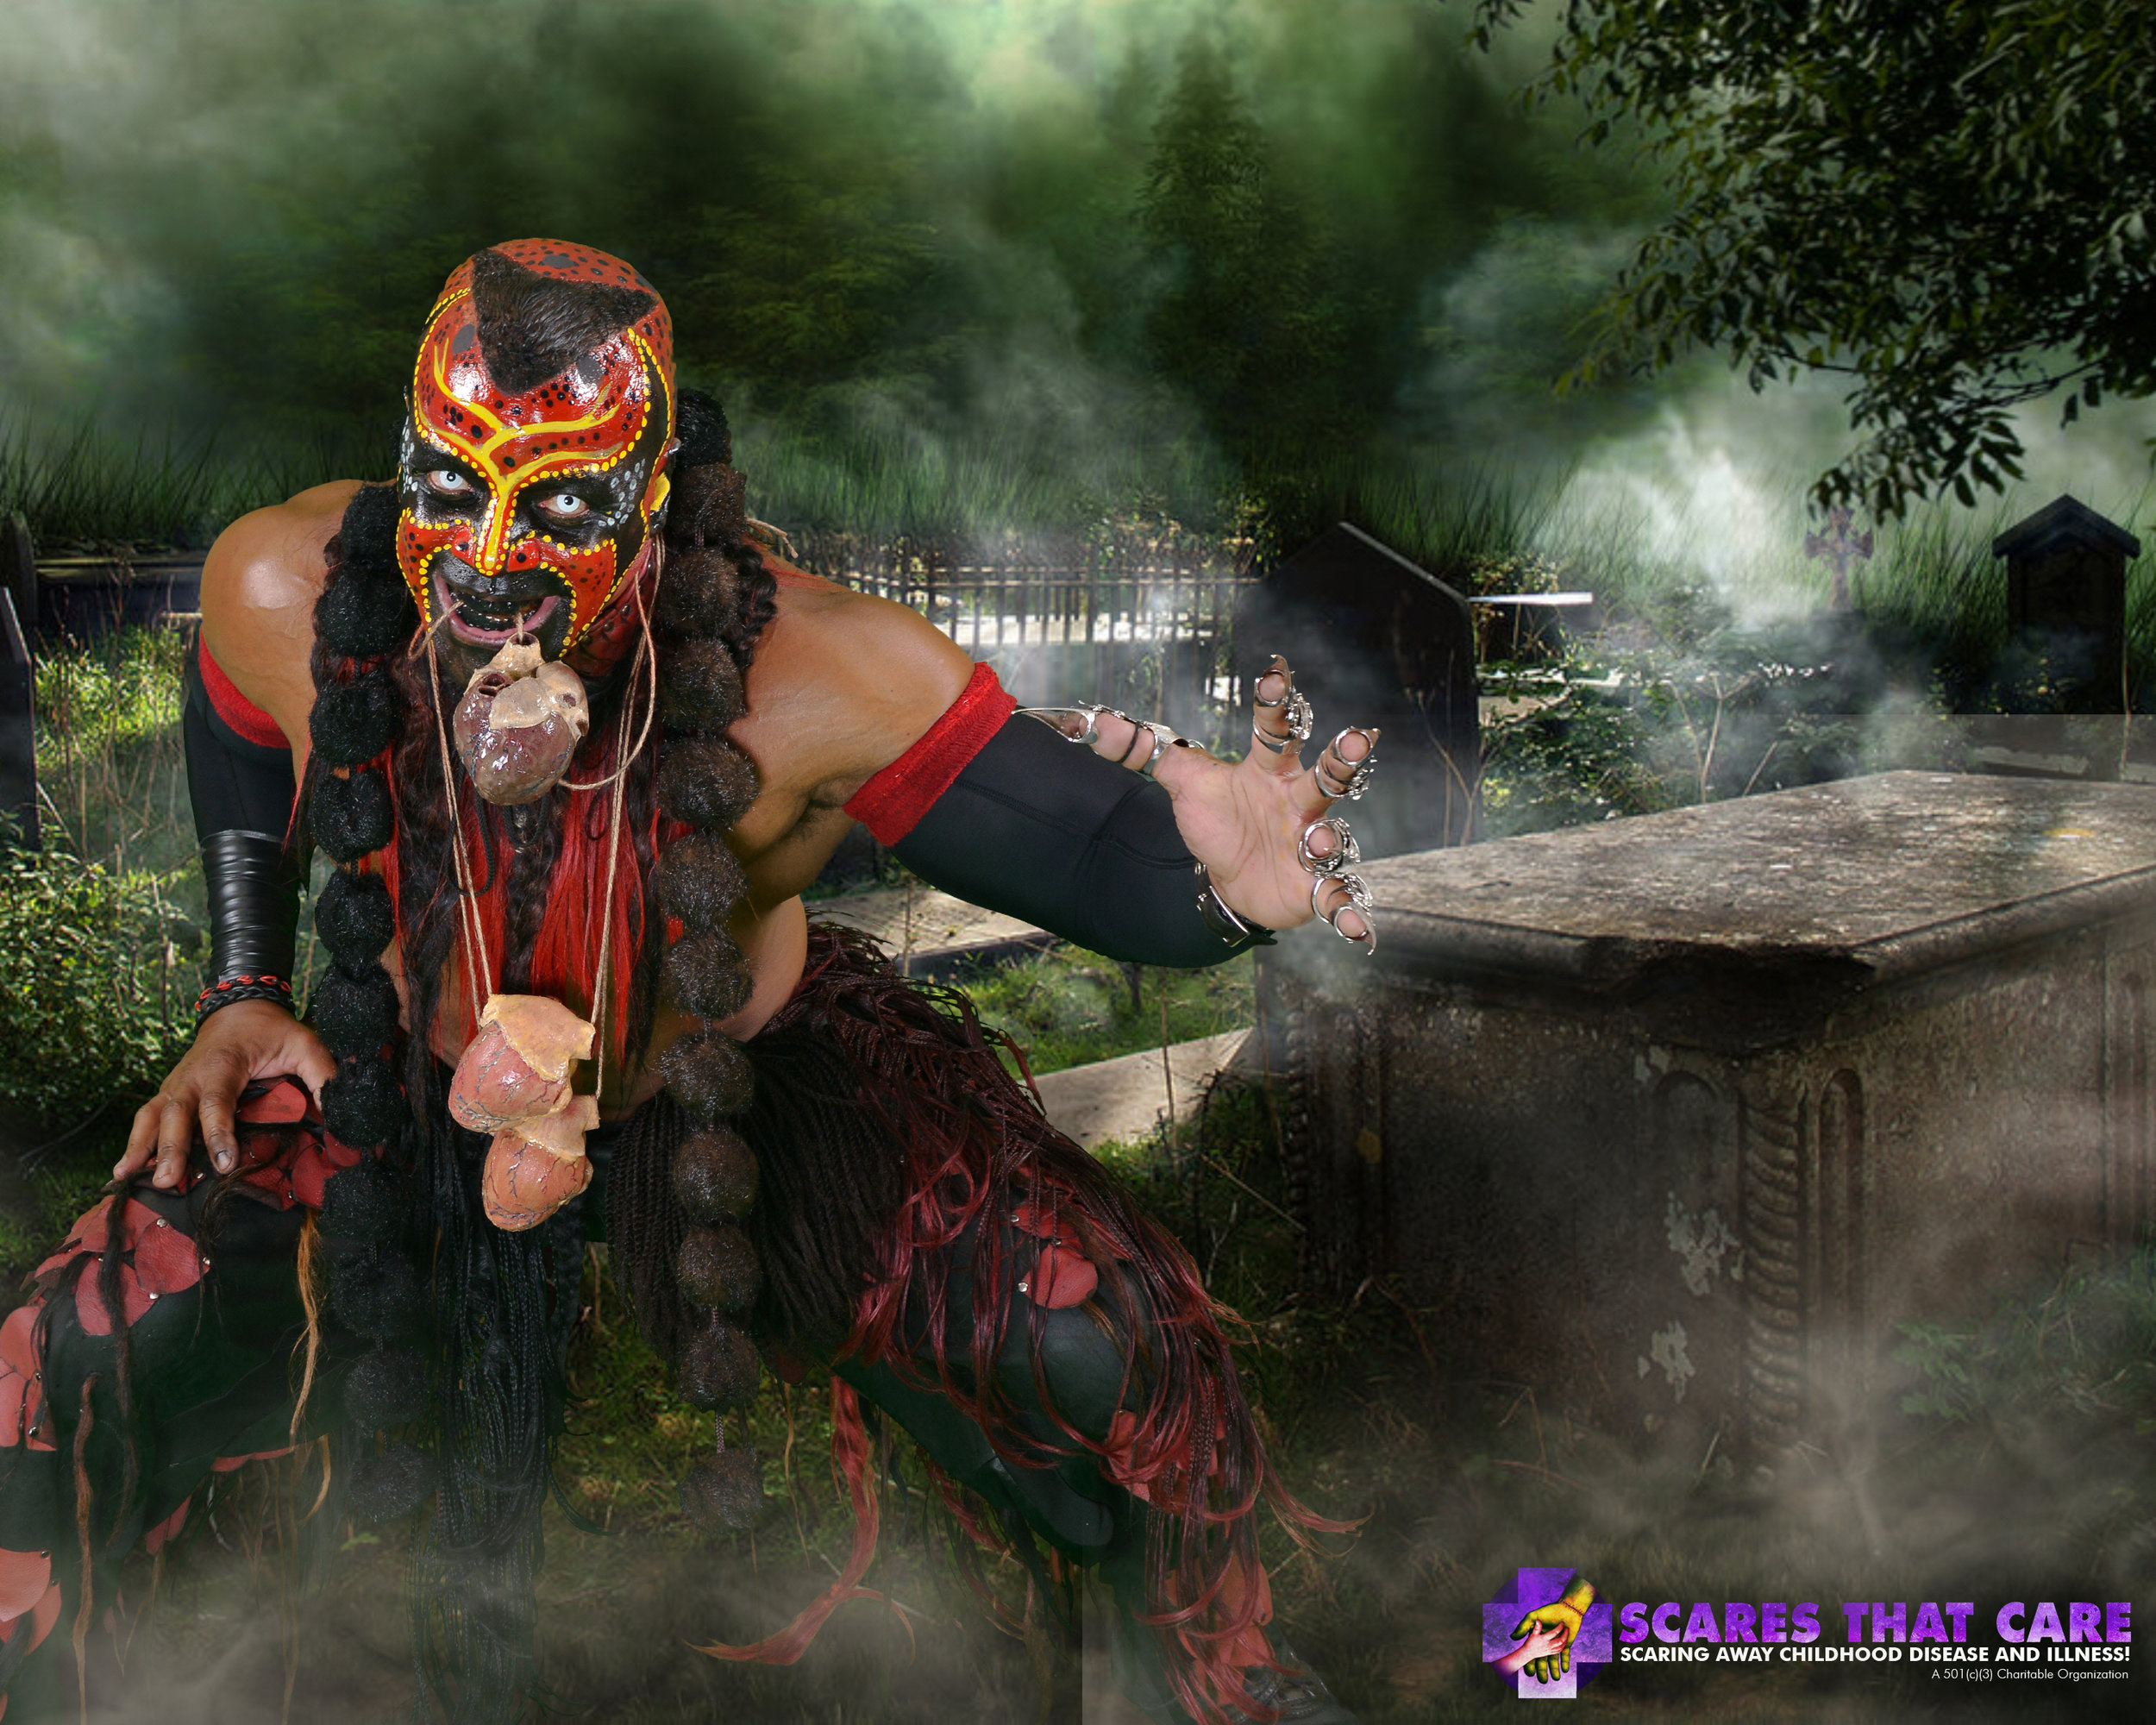 Boogeyman-WWE-Scares-That-Care